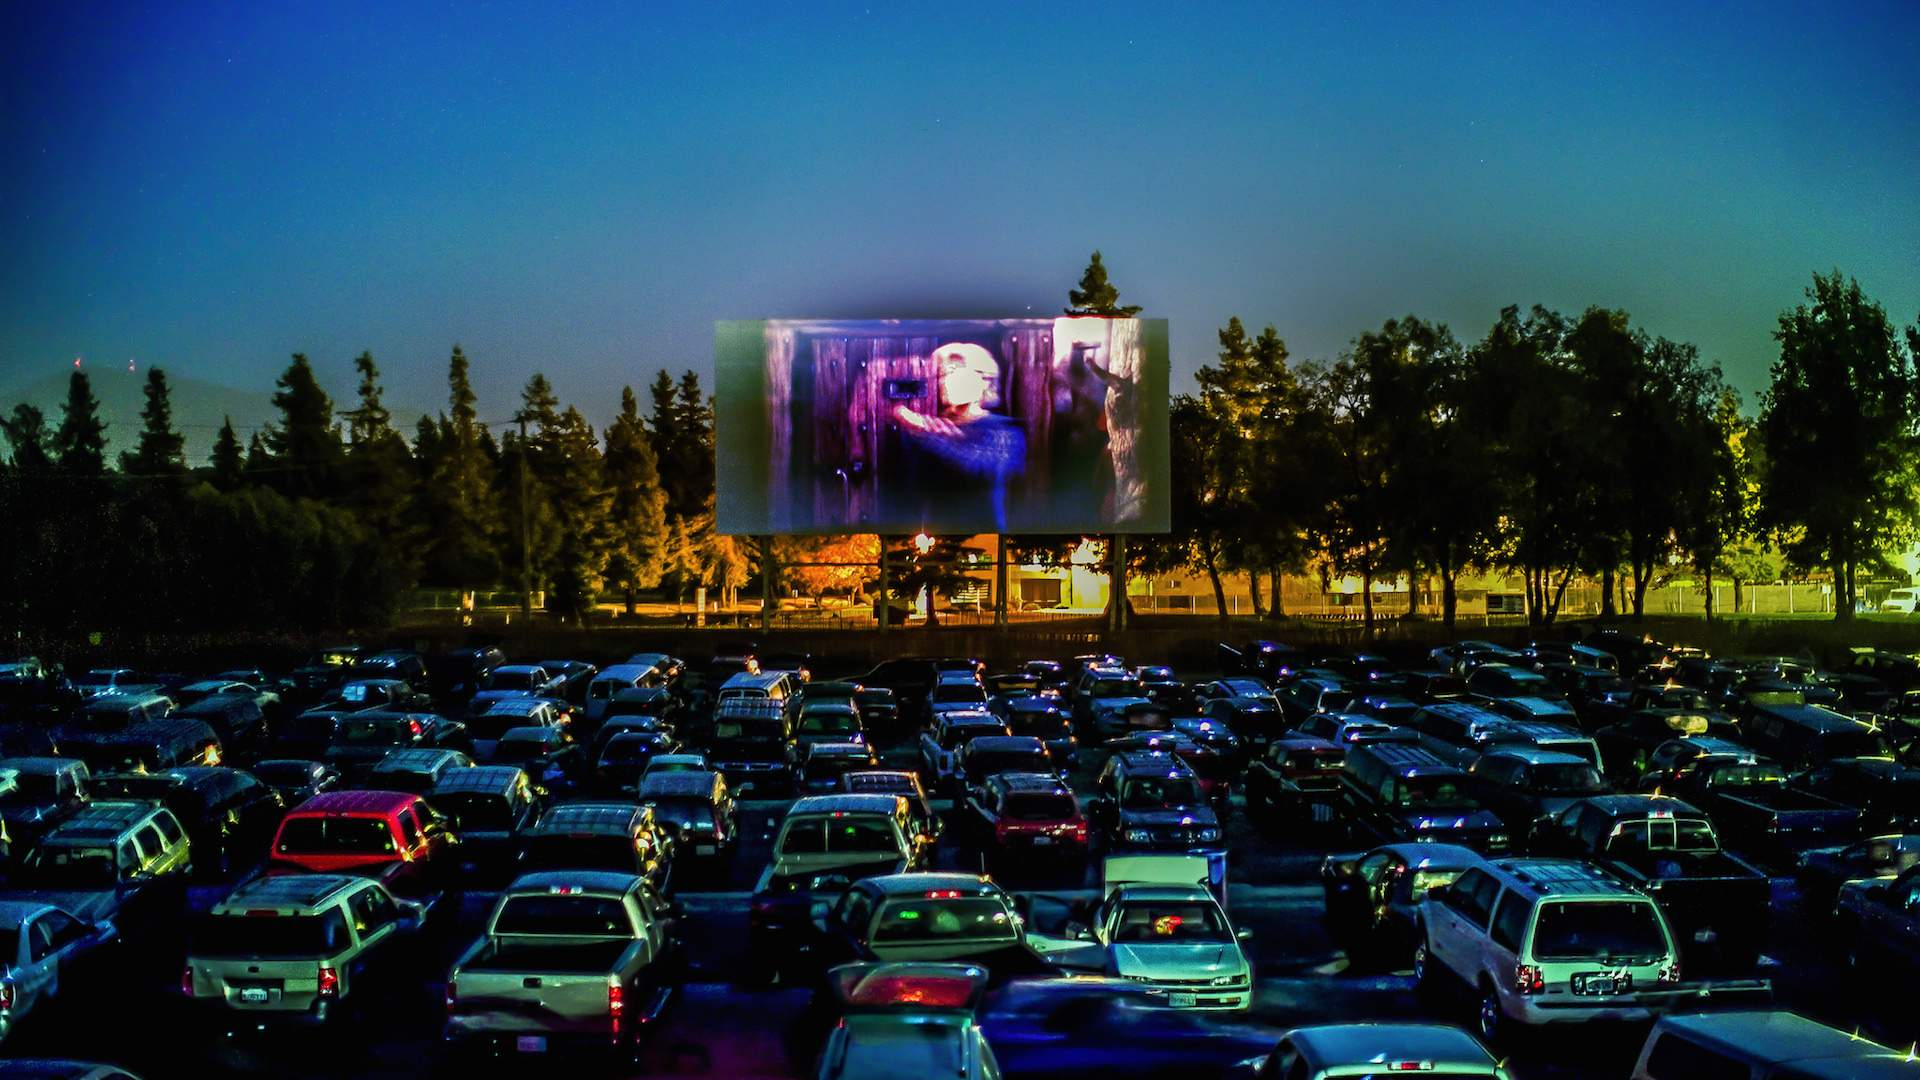 The Parking Lot Social Is Australia's New Drive-In Party Combining Movies, Bands and Karaoke